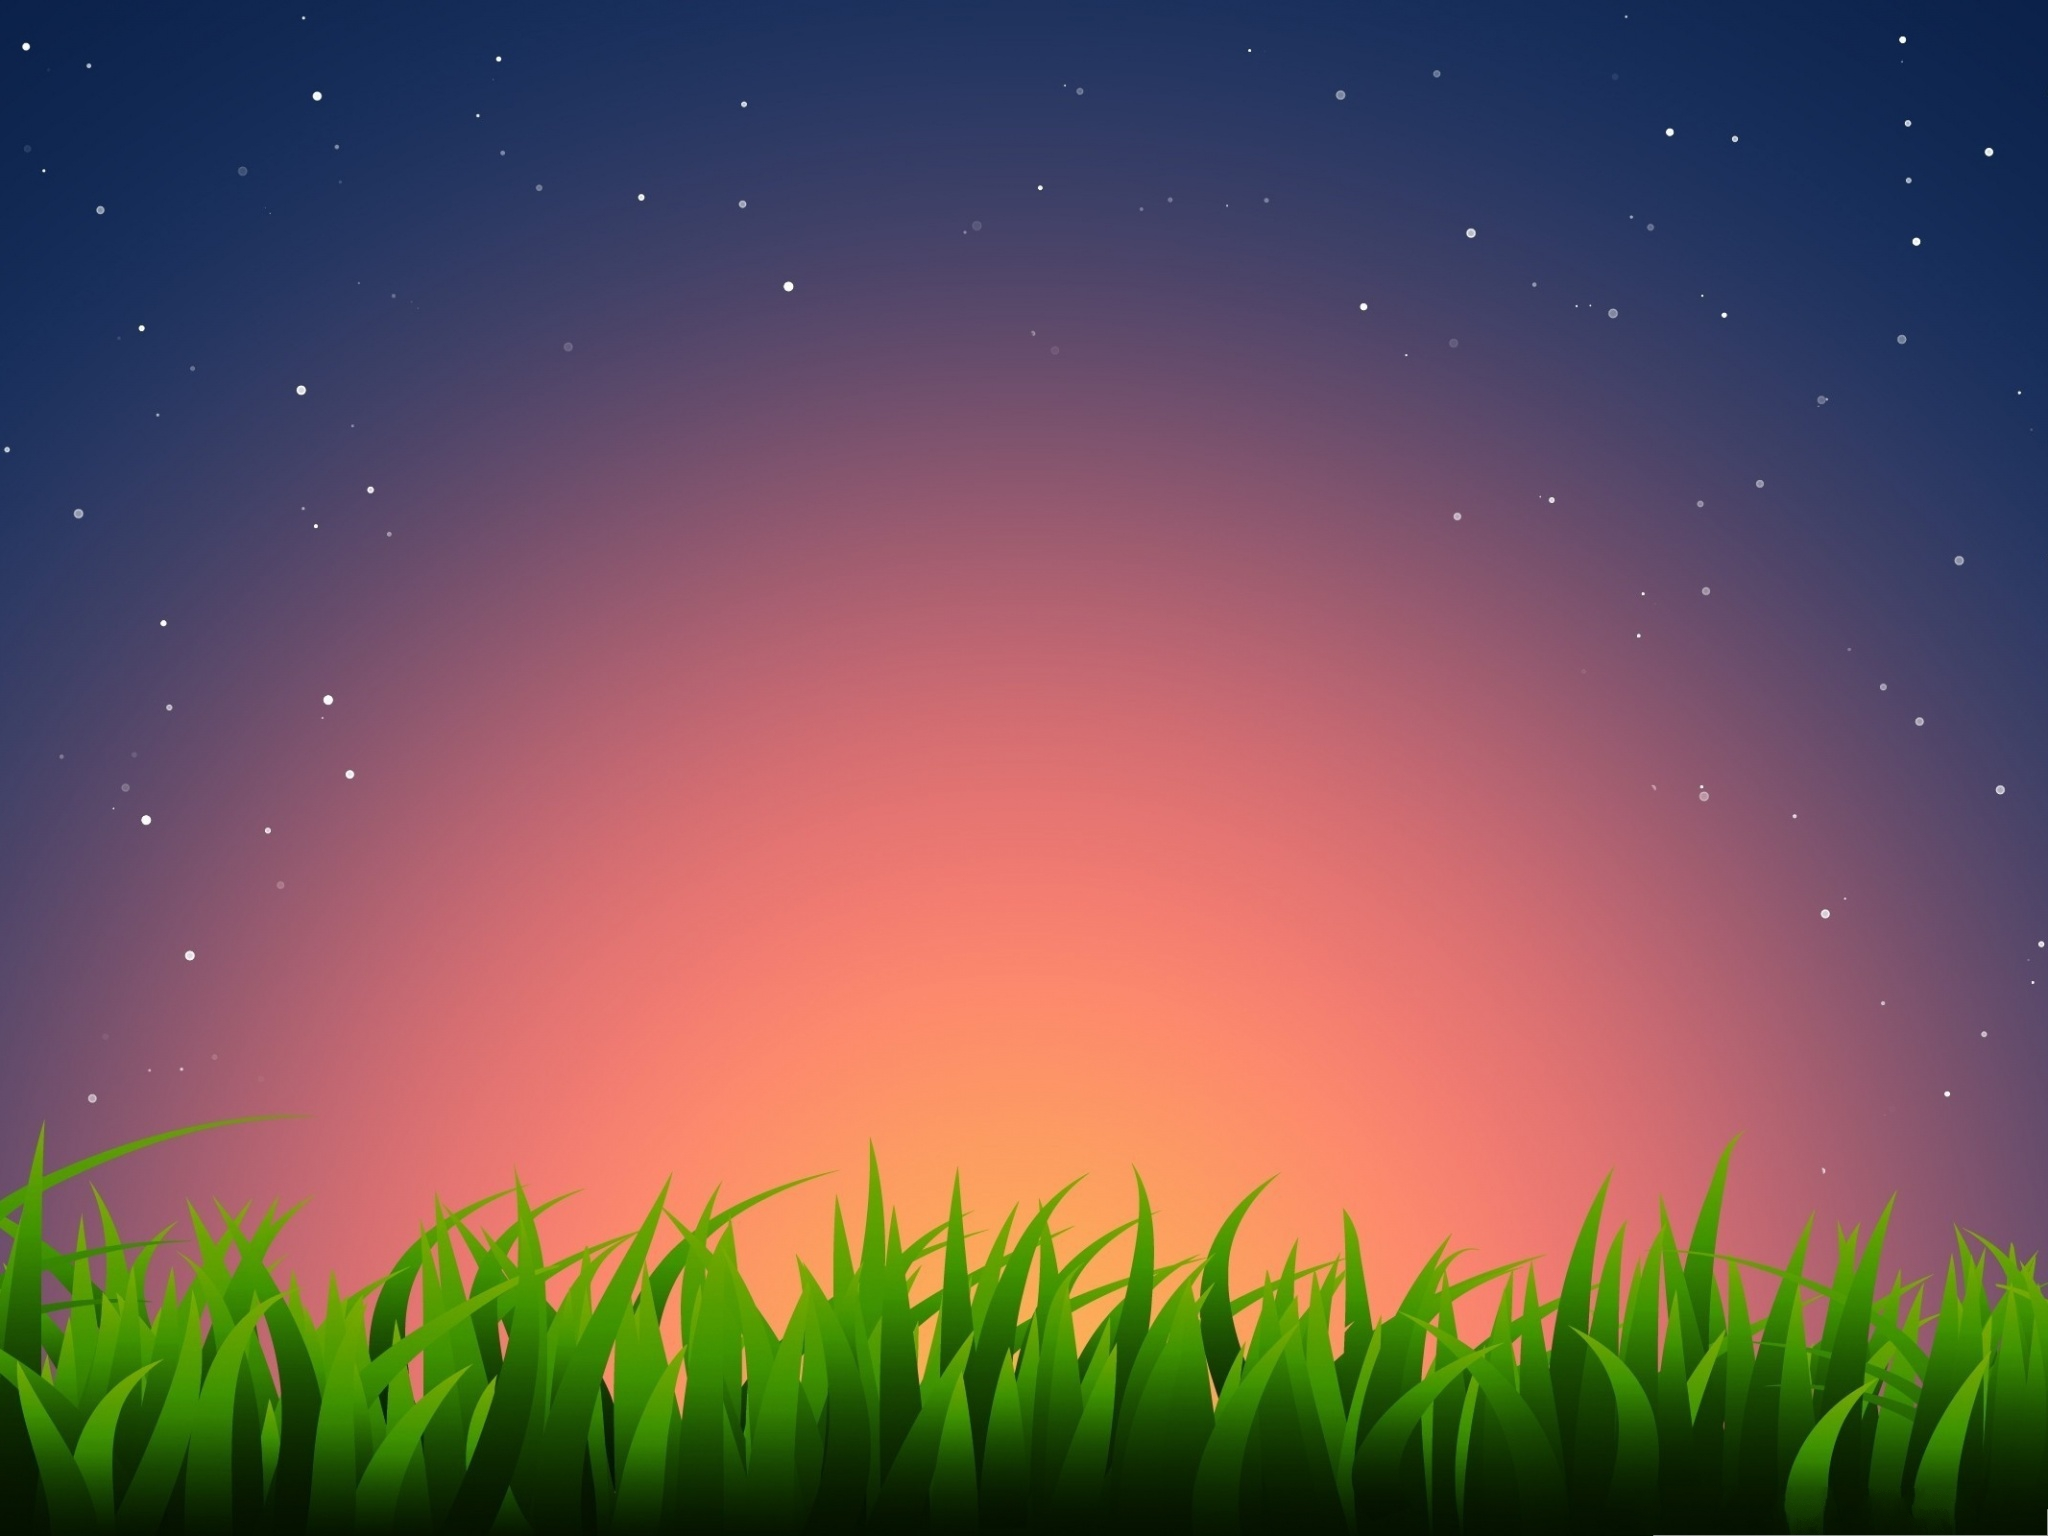 click to free download the wallpaper--Wallpaper for Computer Desktops, Grass Illustration Under the Bright Shinning Sky 2048X1536 free wallpaper download